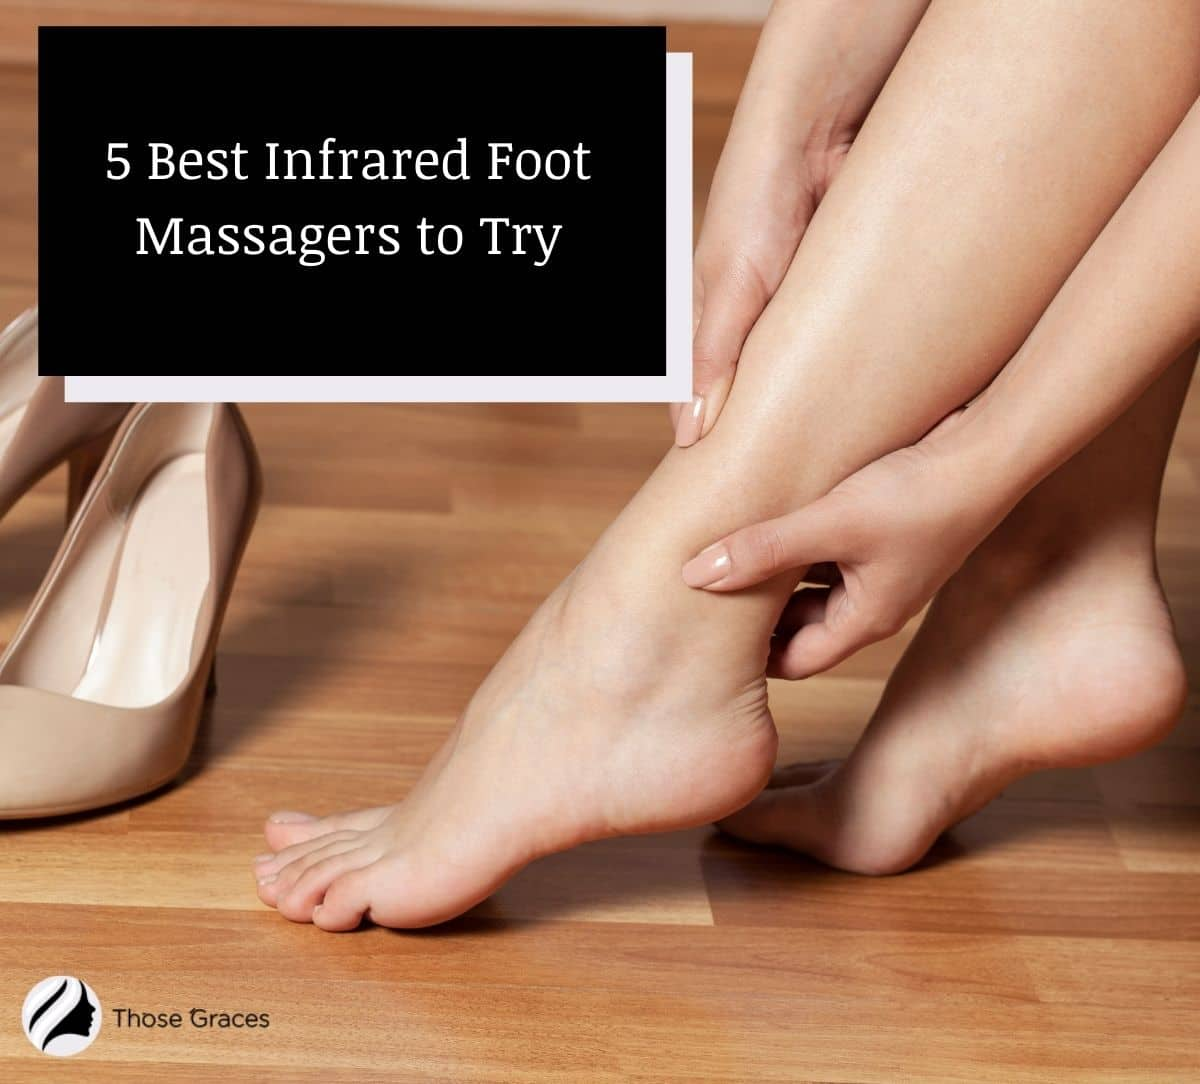 a lady massaging her aching feet and will use infrared foot massagers